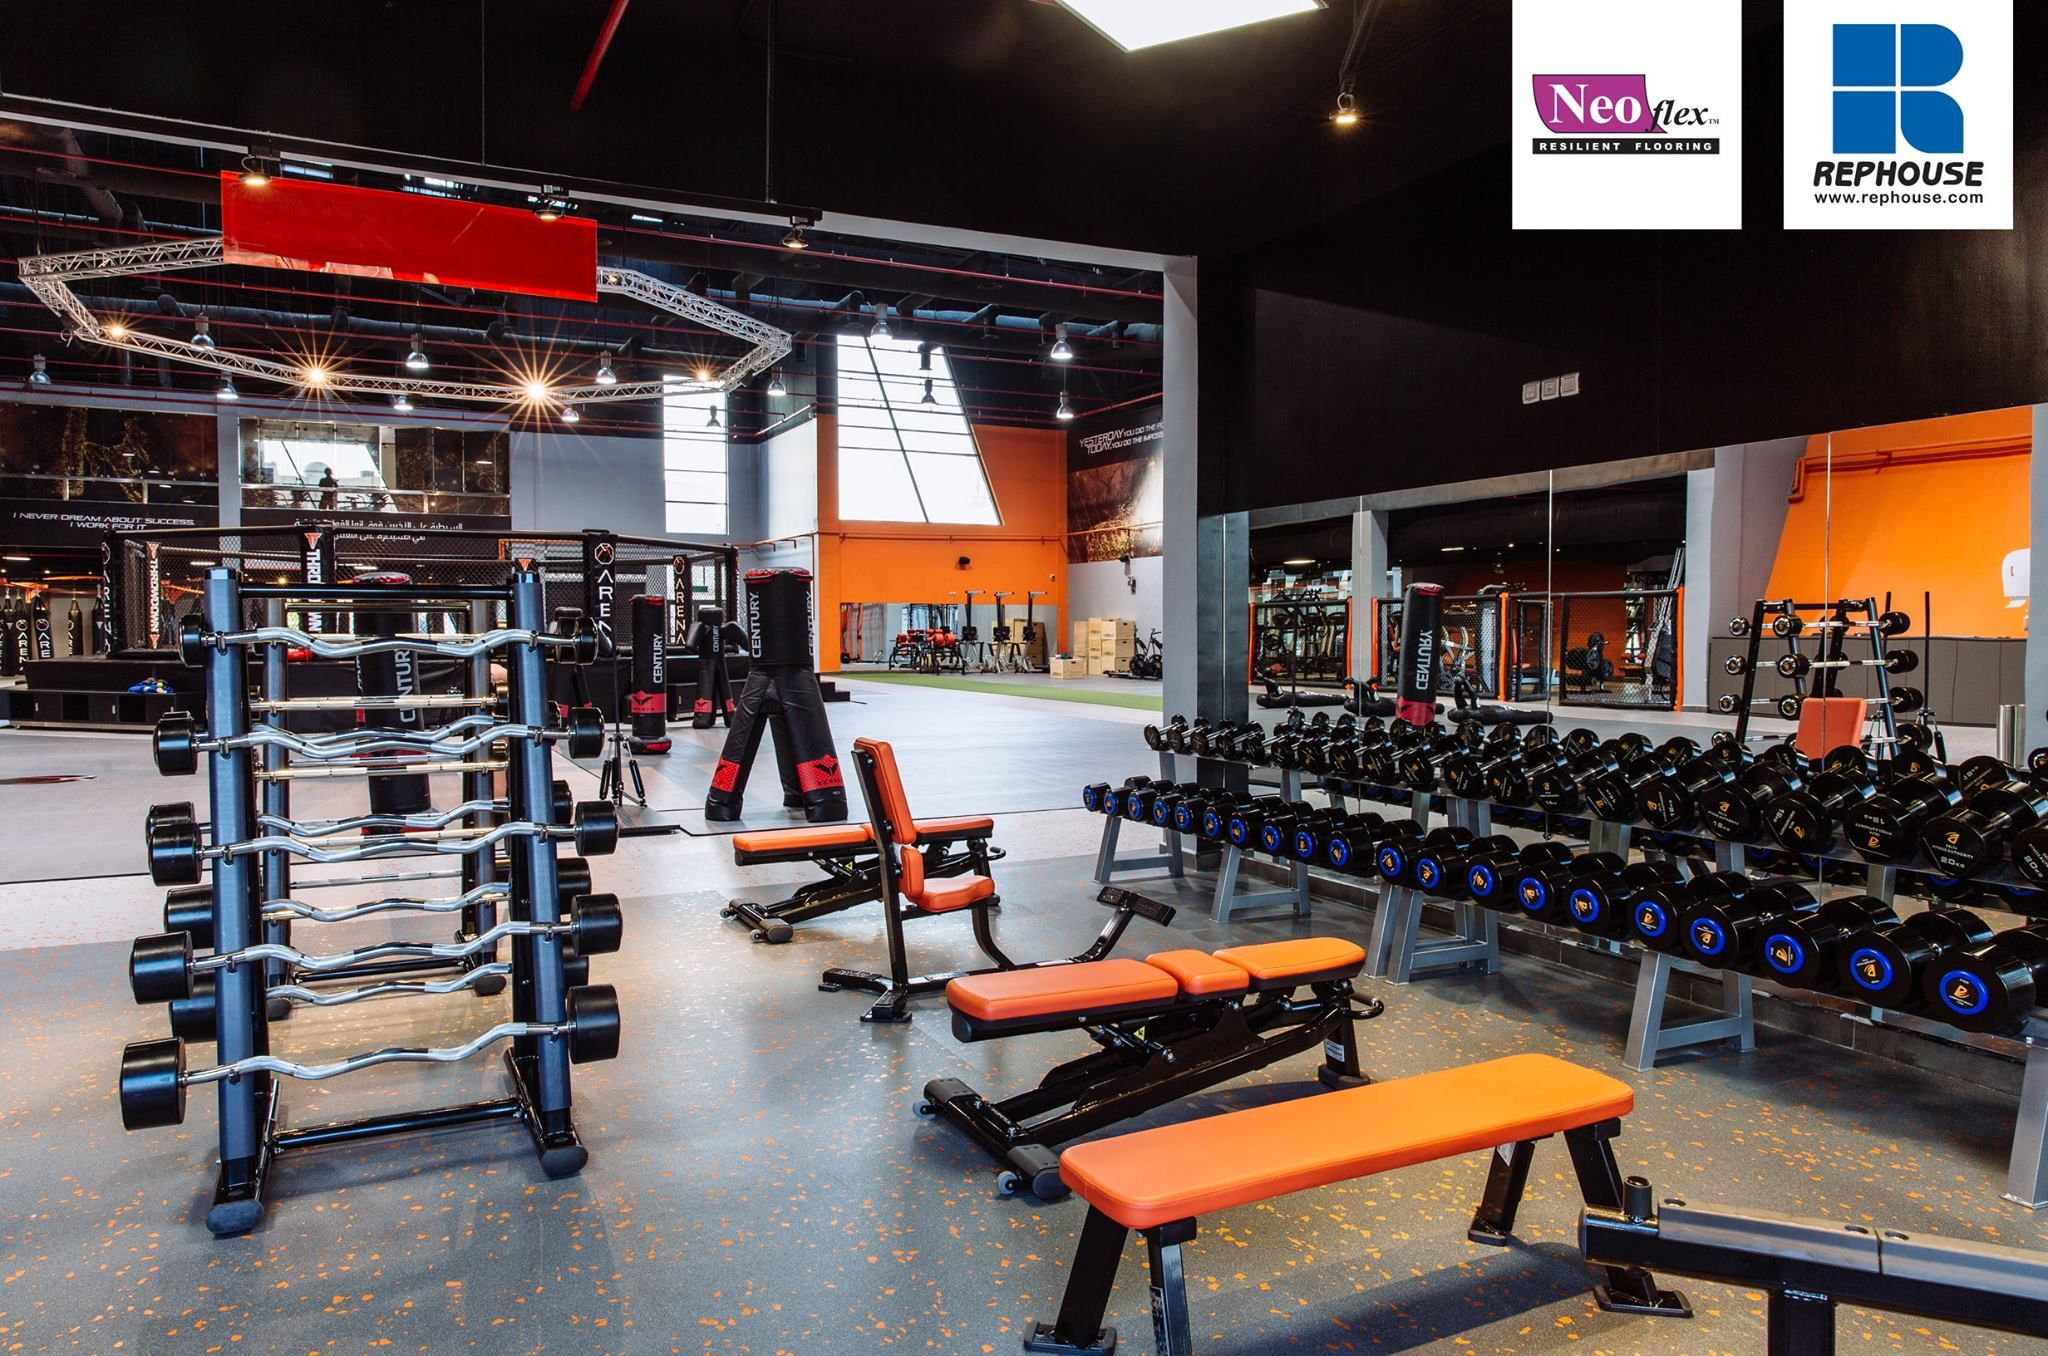 Neoflex 600 Series Bfc Rubber Fitness Flooring Arena Saudi Mma Jeddah Saudi Arabia Rubber Exercise Flooring Floor Workouts At Home Gym